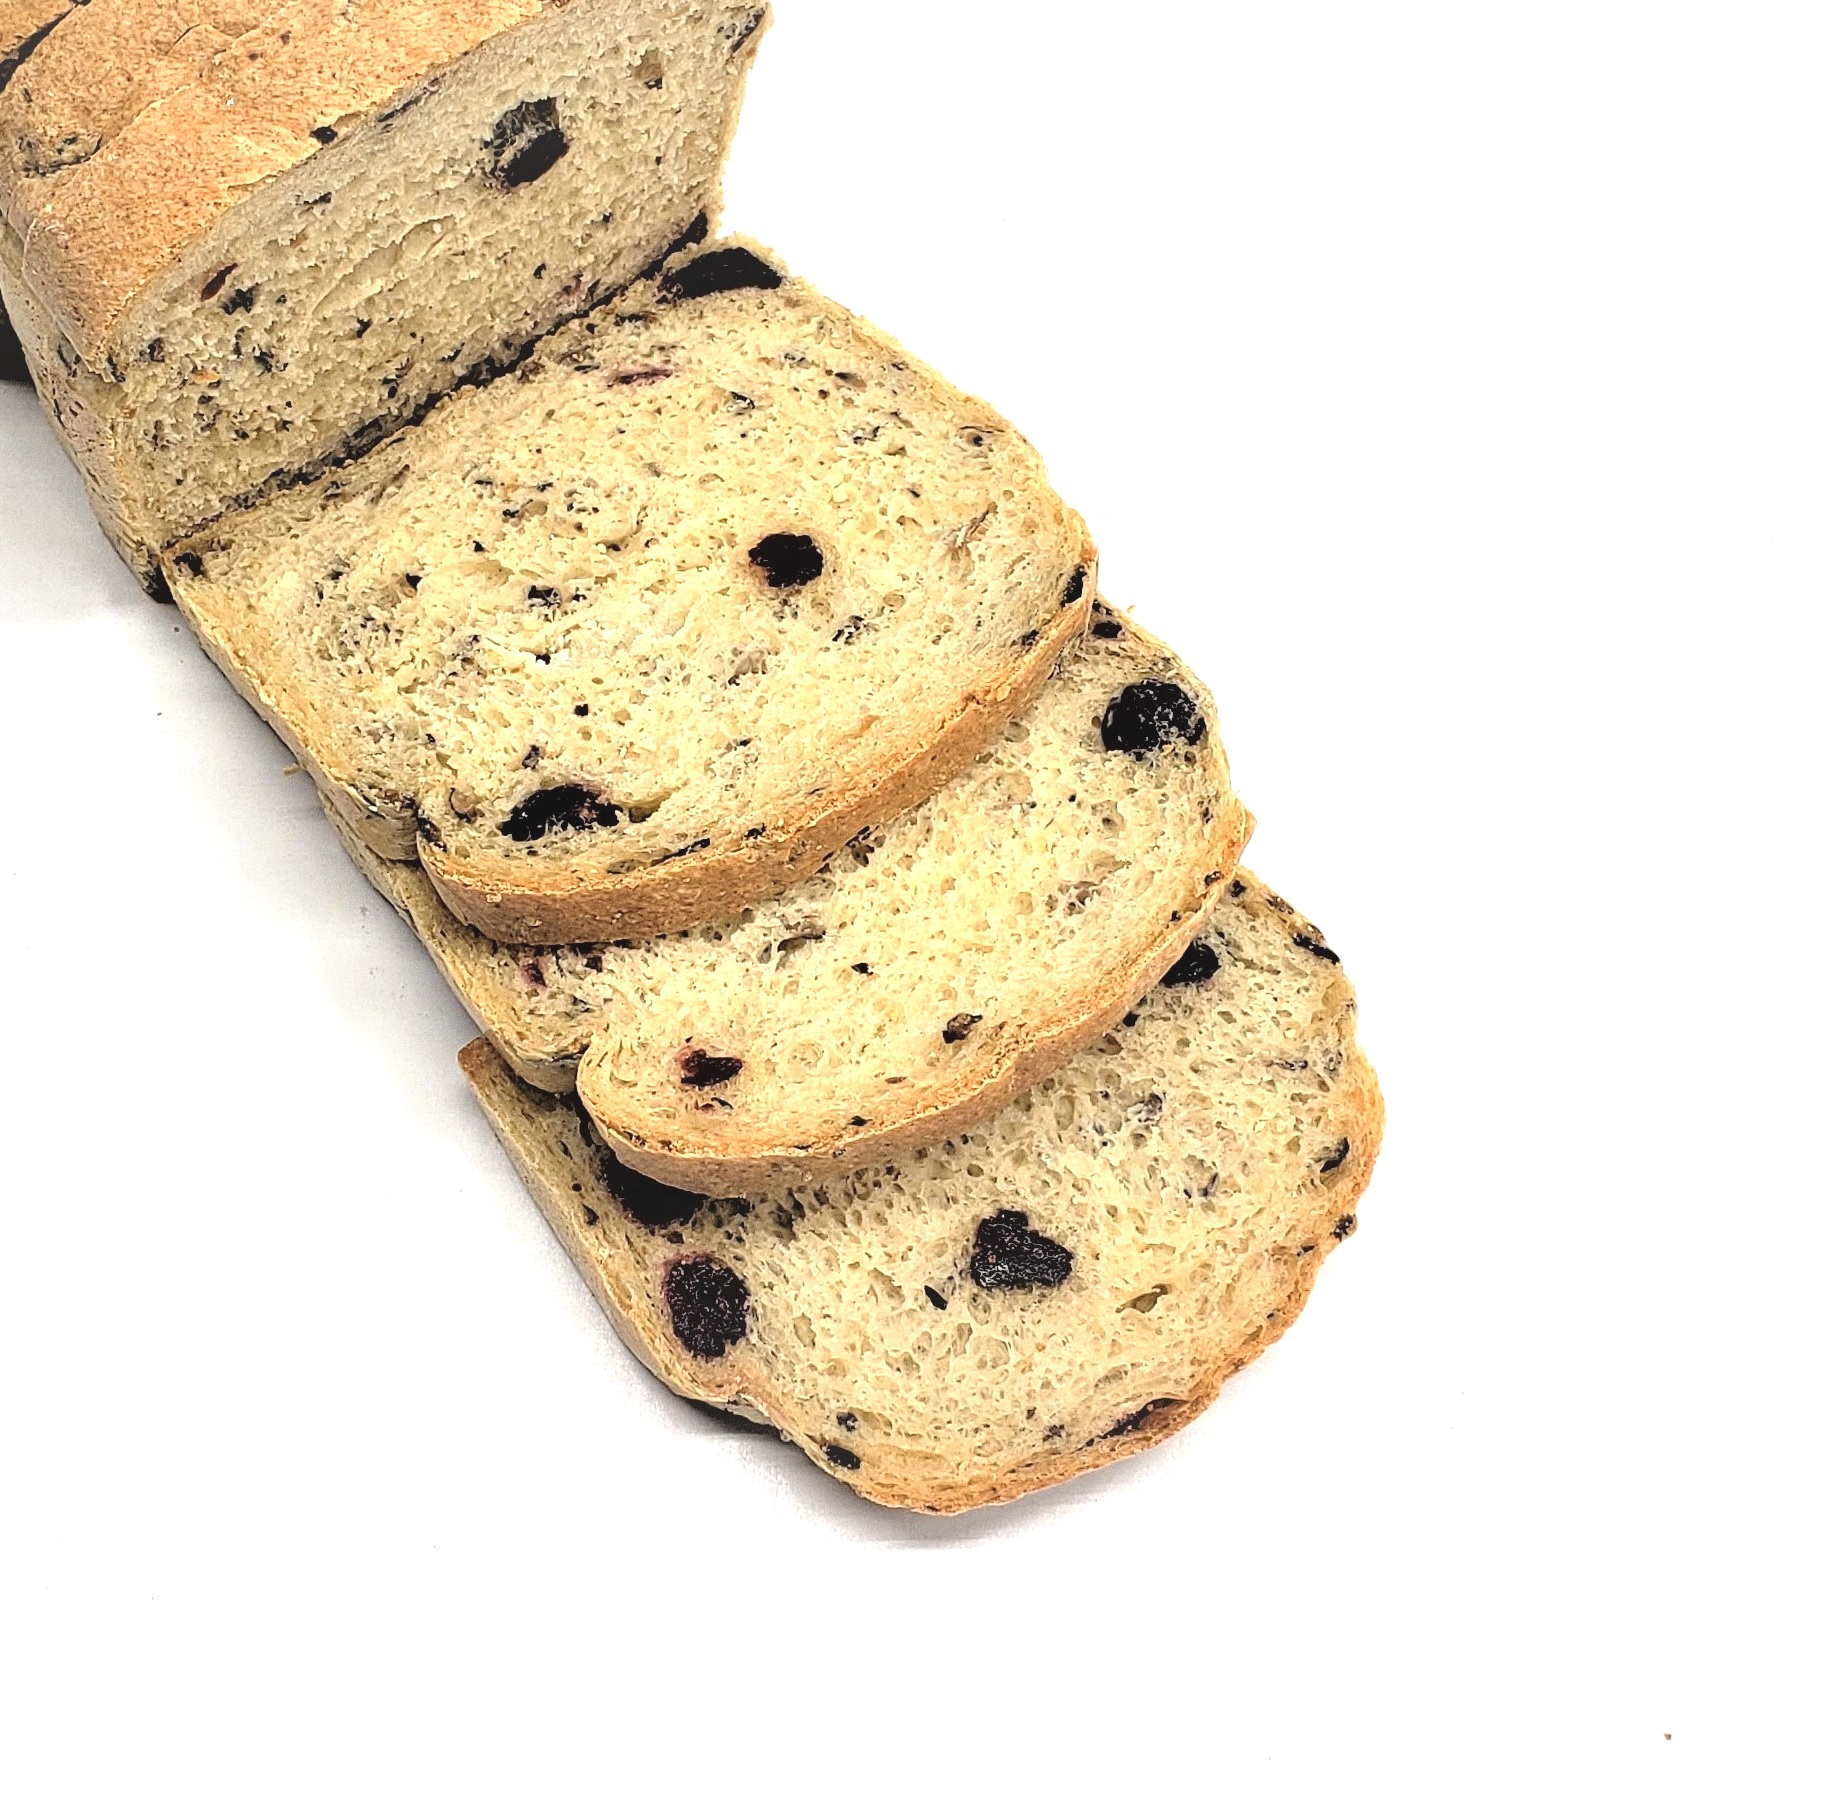 BUY-1-LOAF-GET-    ANY OTHER LOAF 50% OFF   ** AND a free muffin